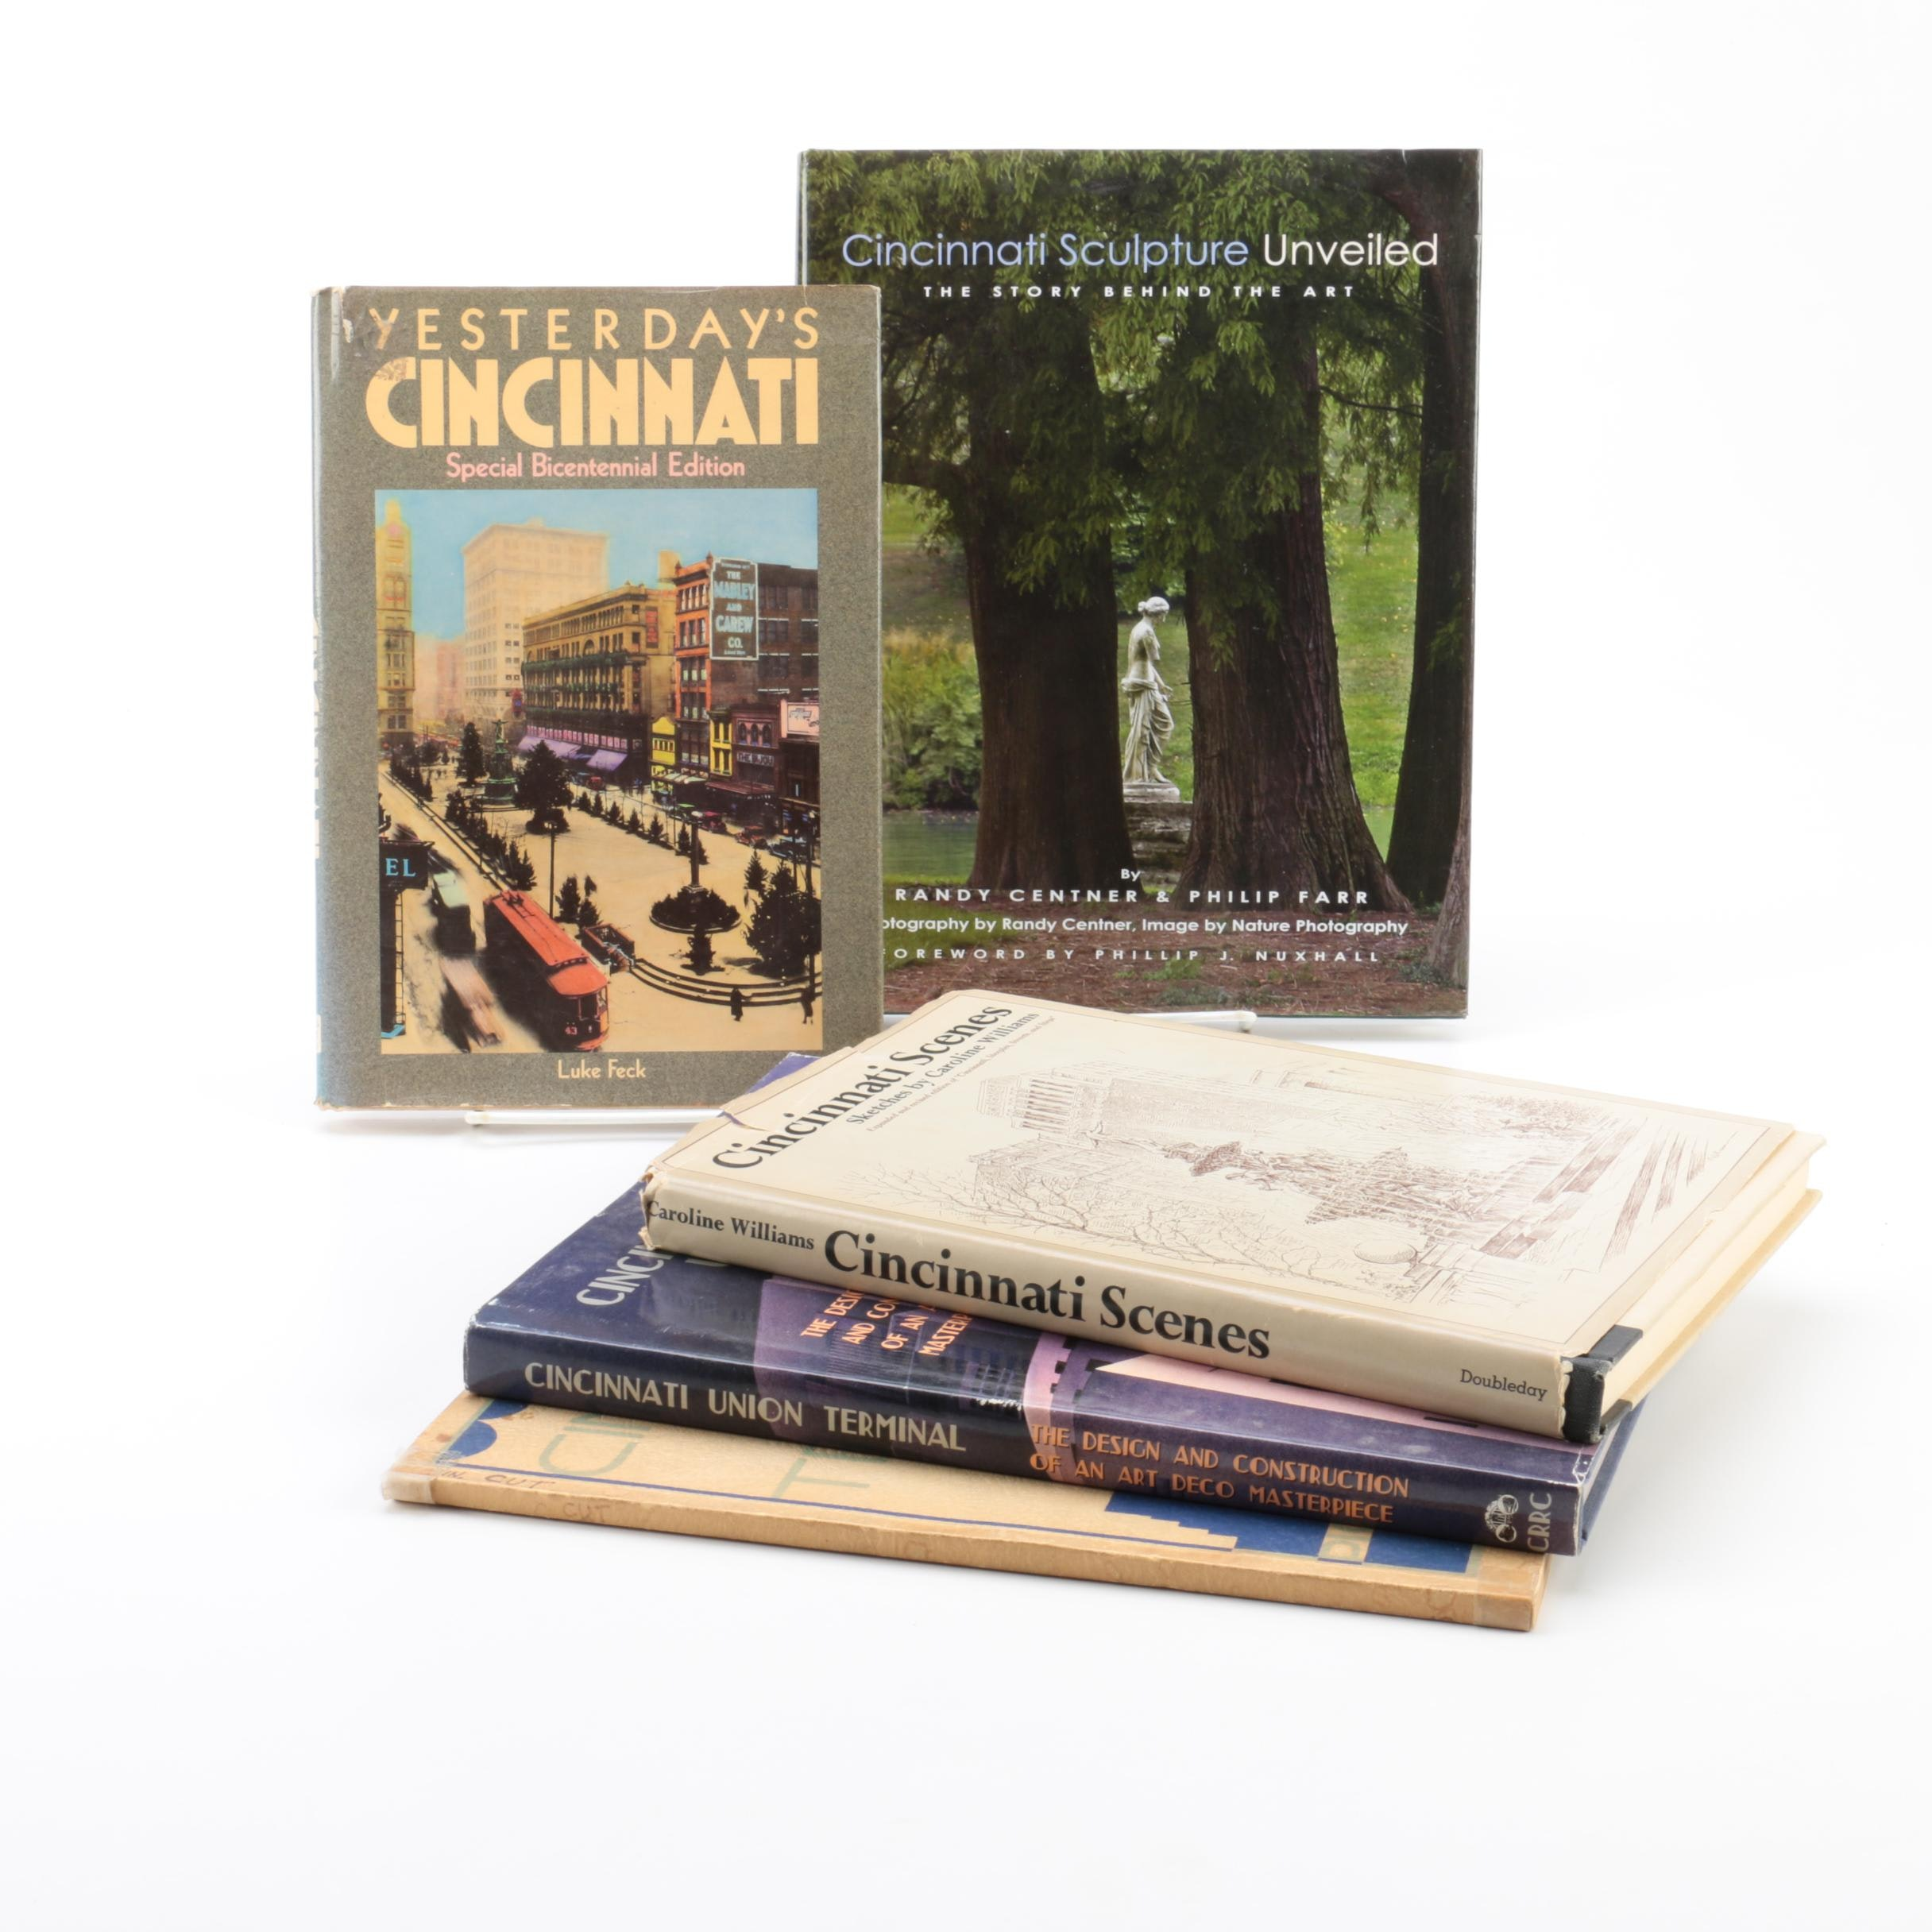 Books on Cincinnati including Caroline Williams and Cincinnati Union Terminal